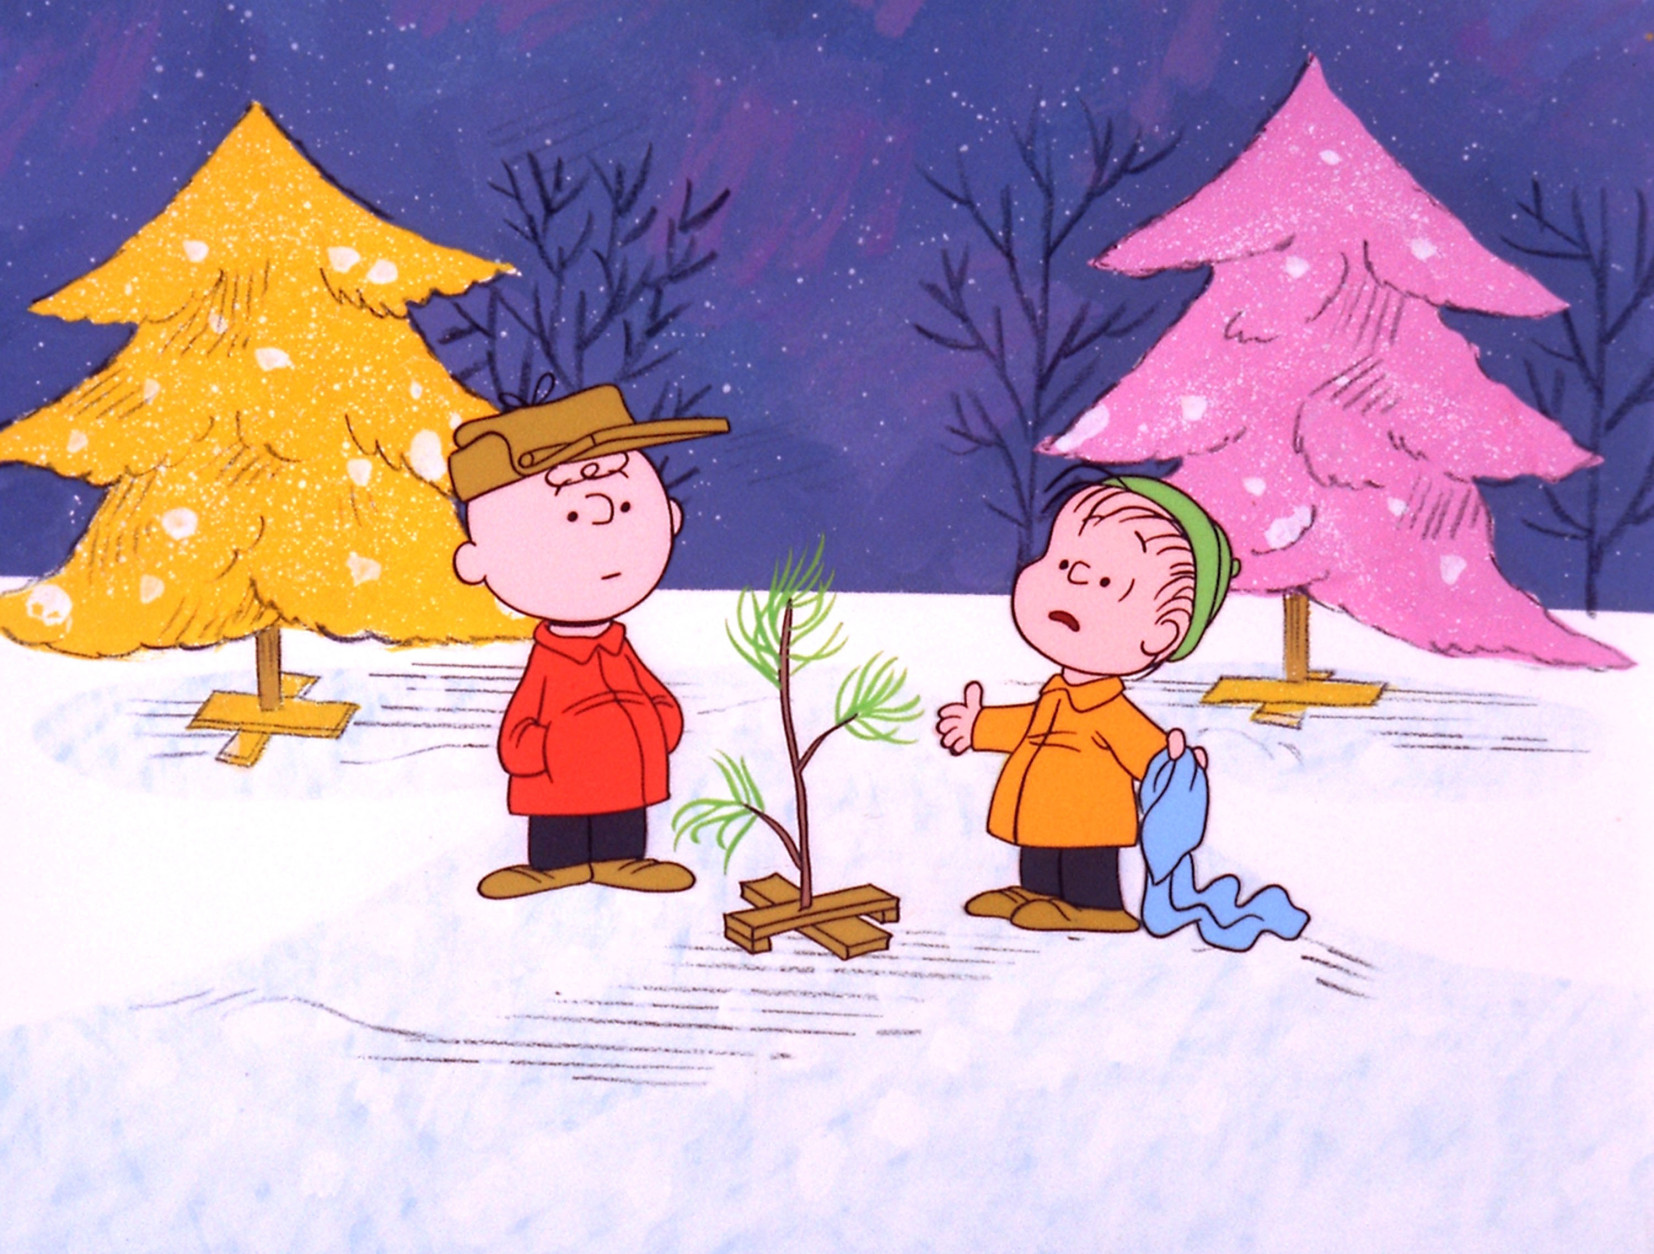 """In this promotional image provided by ABC TV, Charlie Brown and Linus appear in a scene from """"A Charlie Brown Christmas, which ABC will air Dec. 6 and Dec. 16 to commemorate the classic animated cartoon's 40th anniversary. The animated special was created by late cartoonist Charles M. Schulz in 1965. (AP Photo/ABC,  1965 United Feature Syndicate Inc.)"""